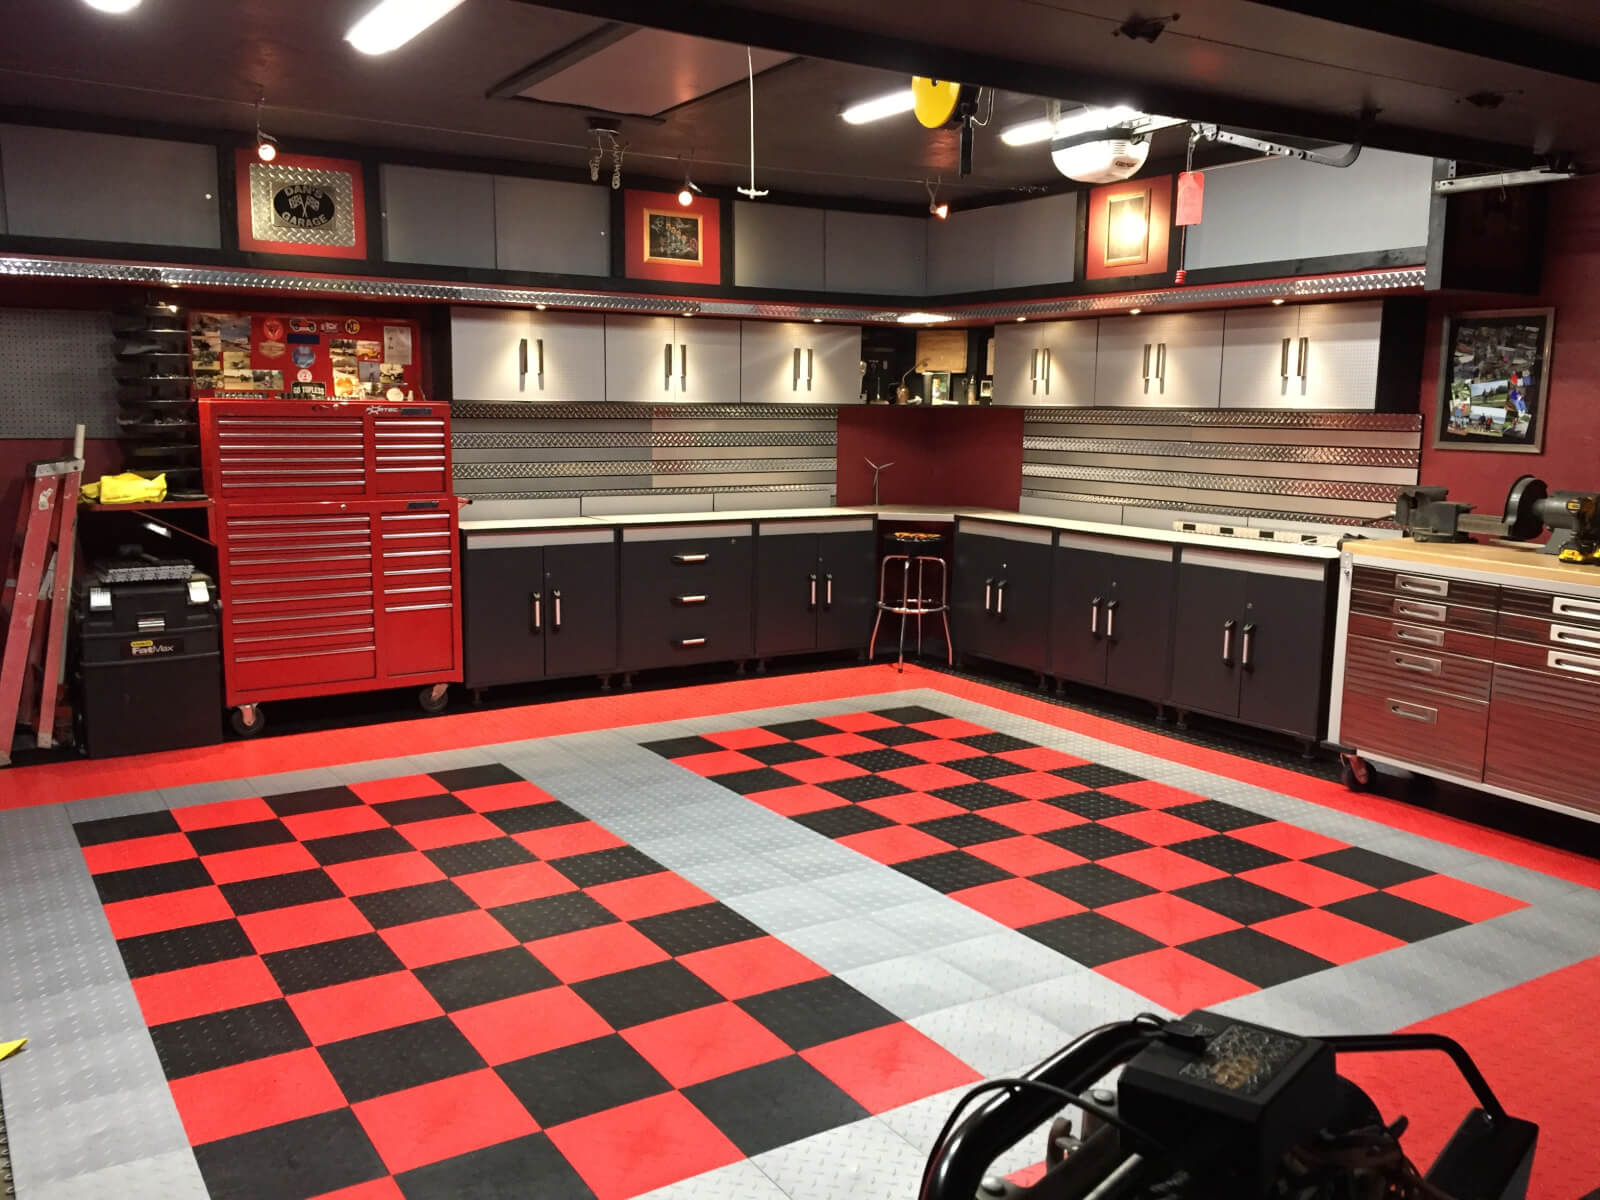 Garage Floor Tiles That Drain Dan S Black And Red Checkered Tile Garage Floor